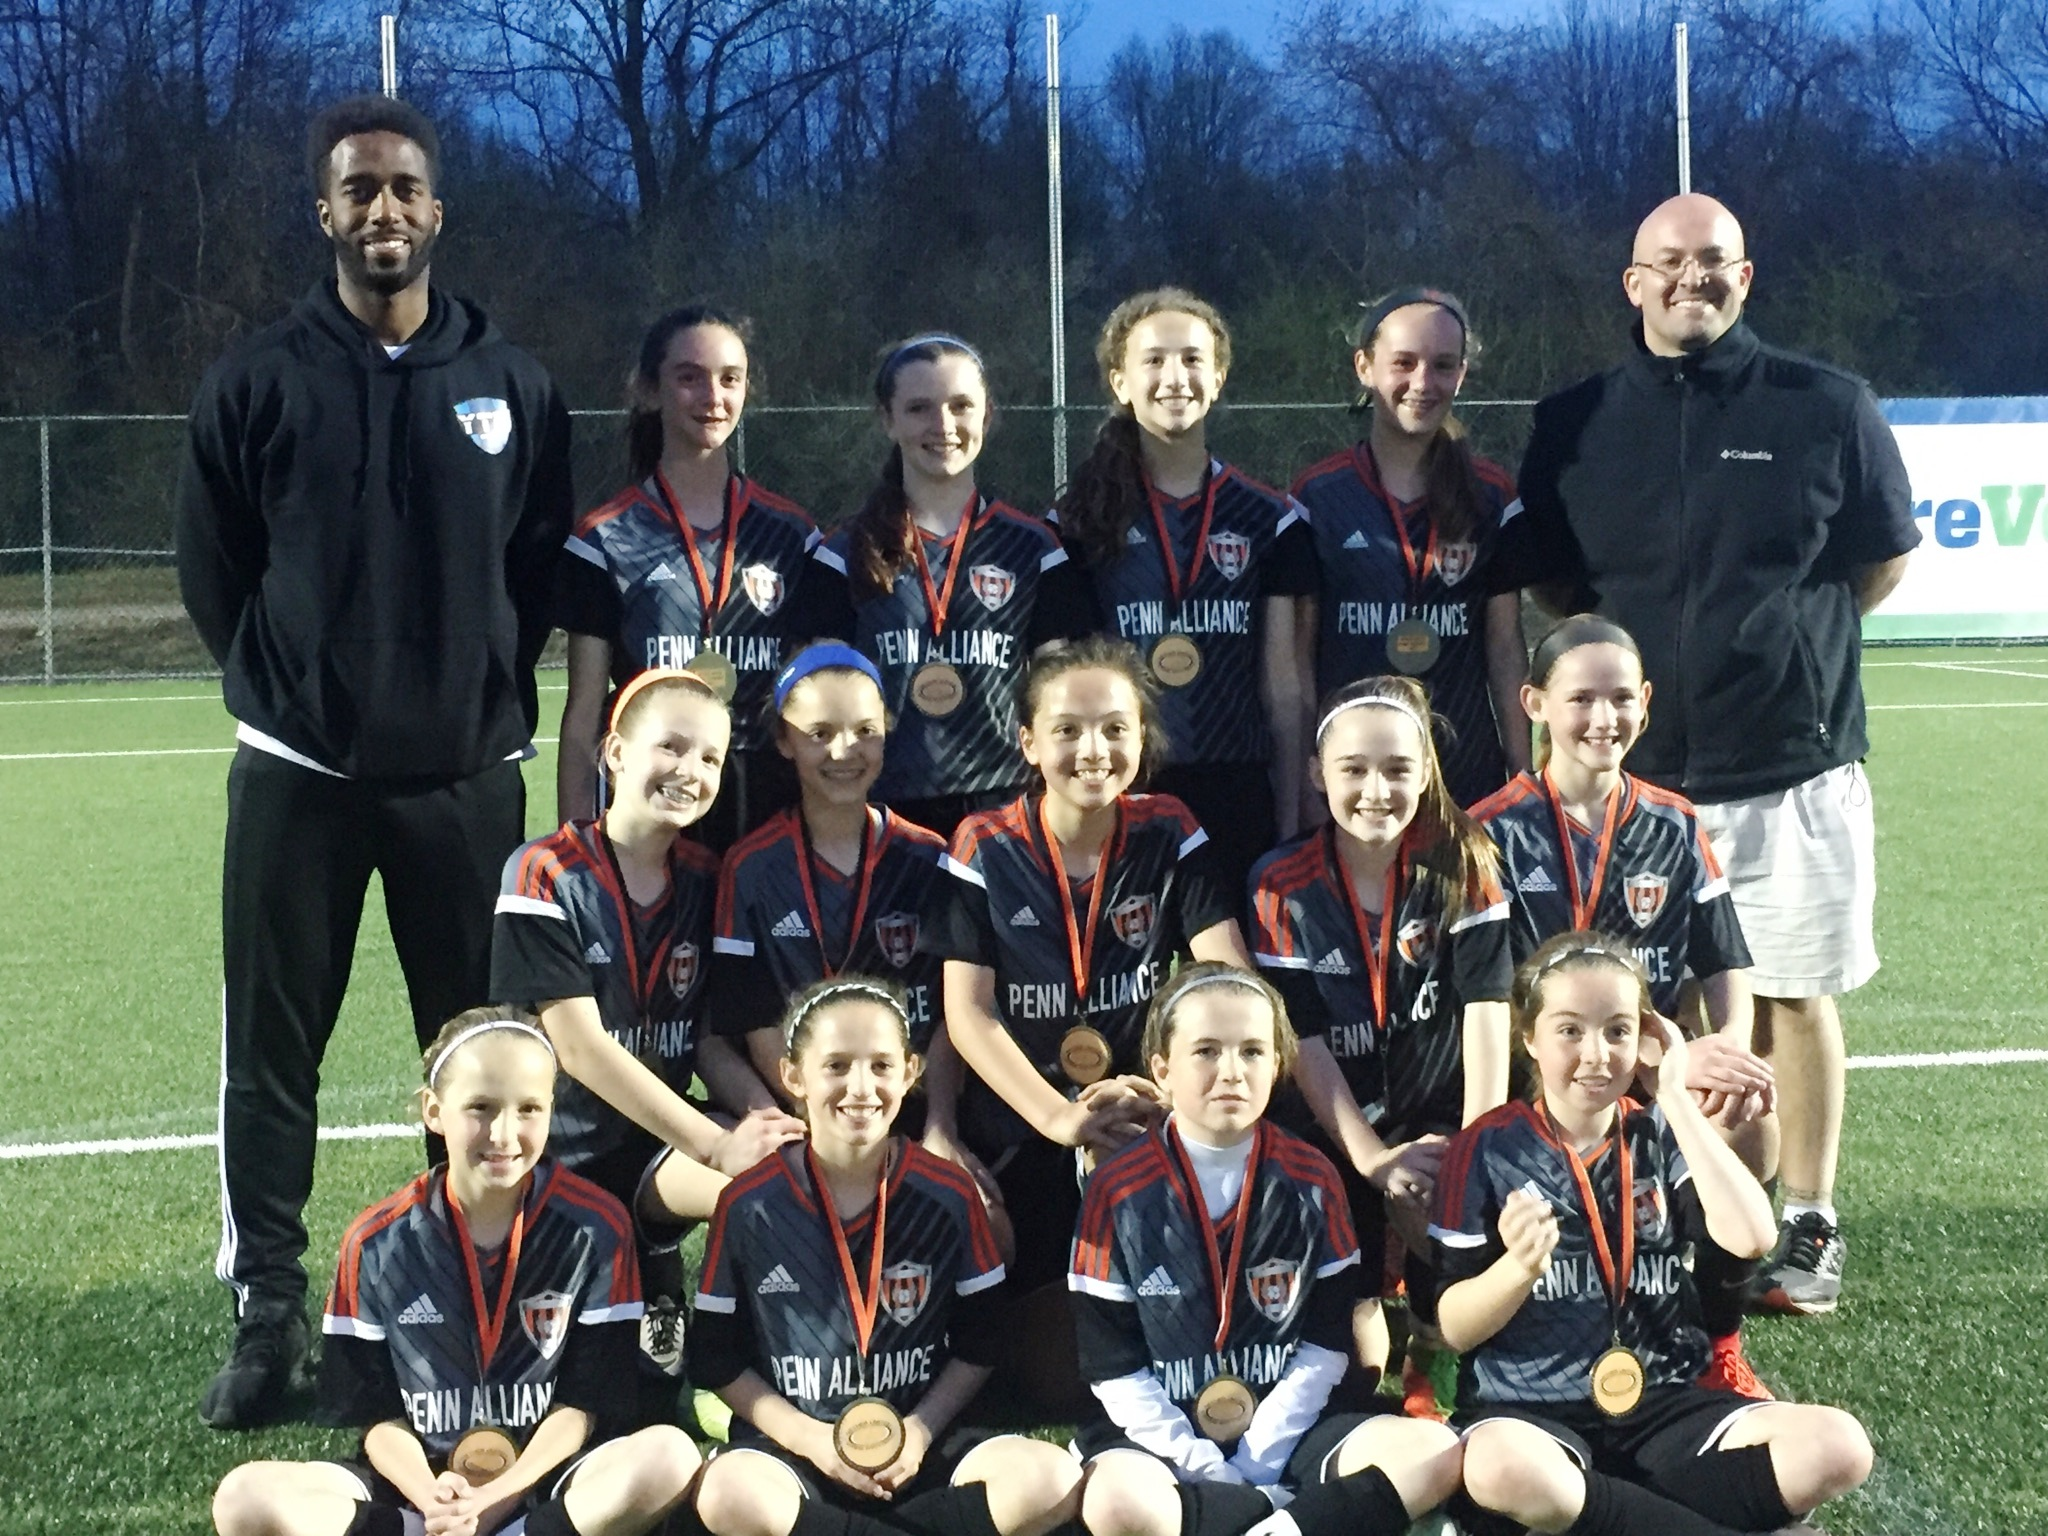 Our 05 Girls!